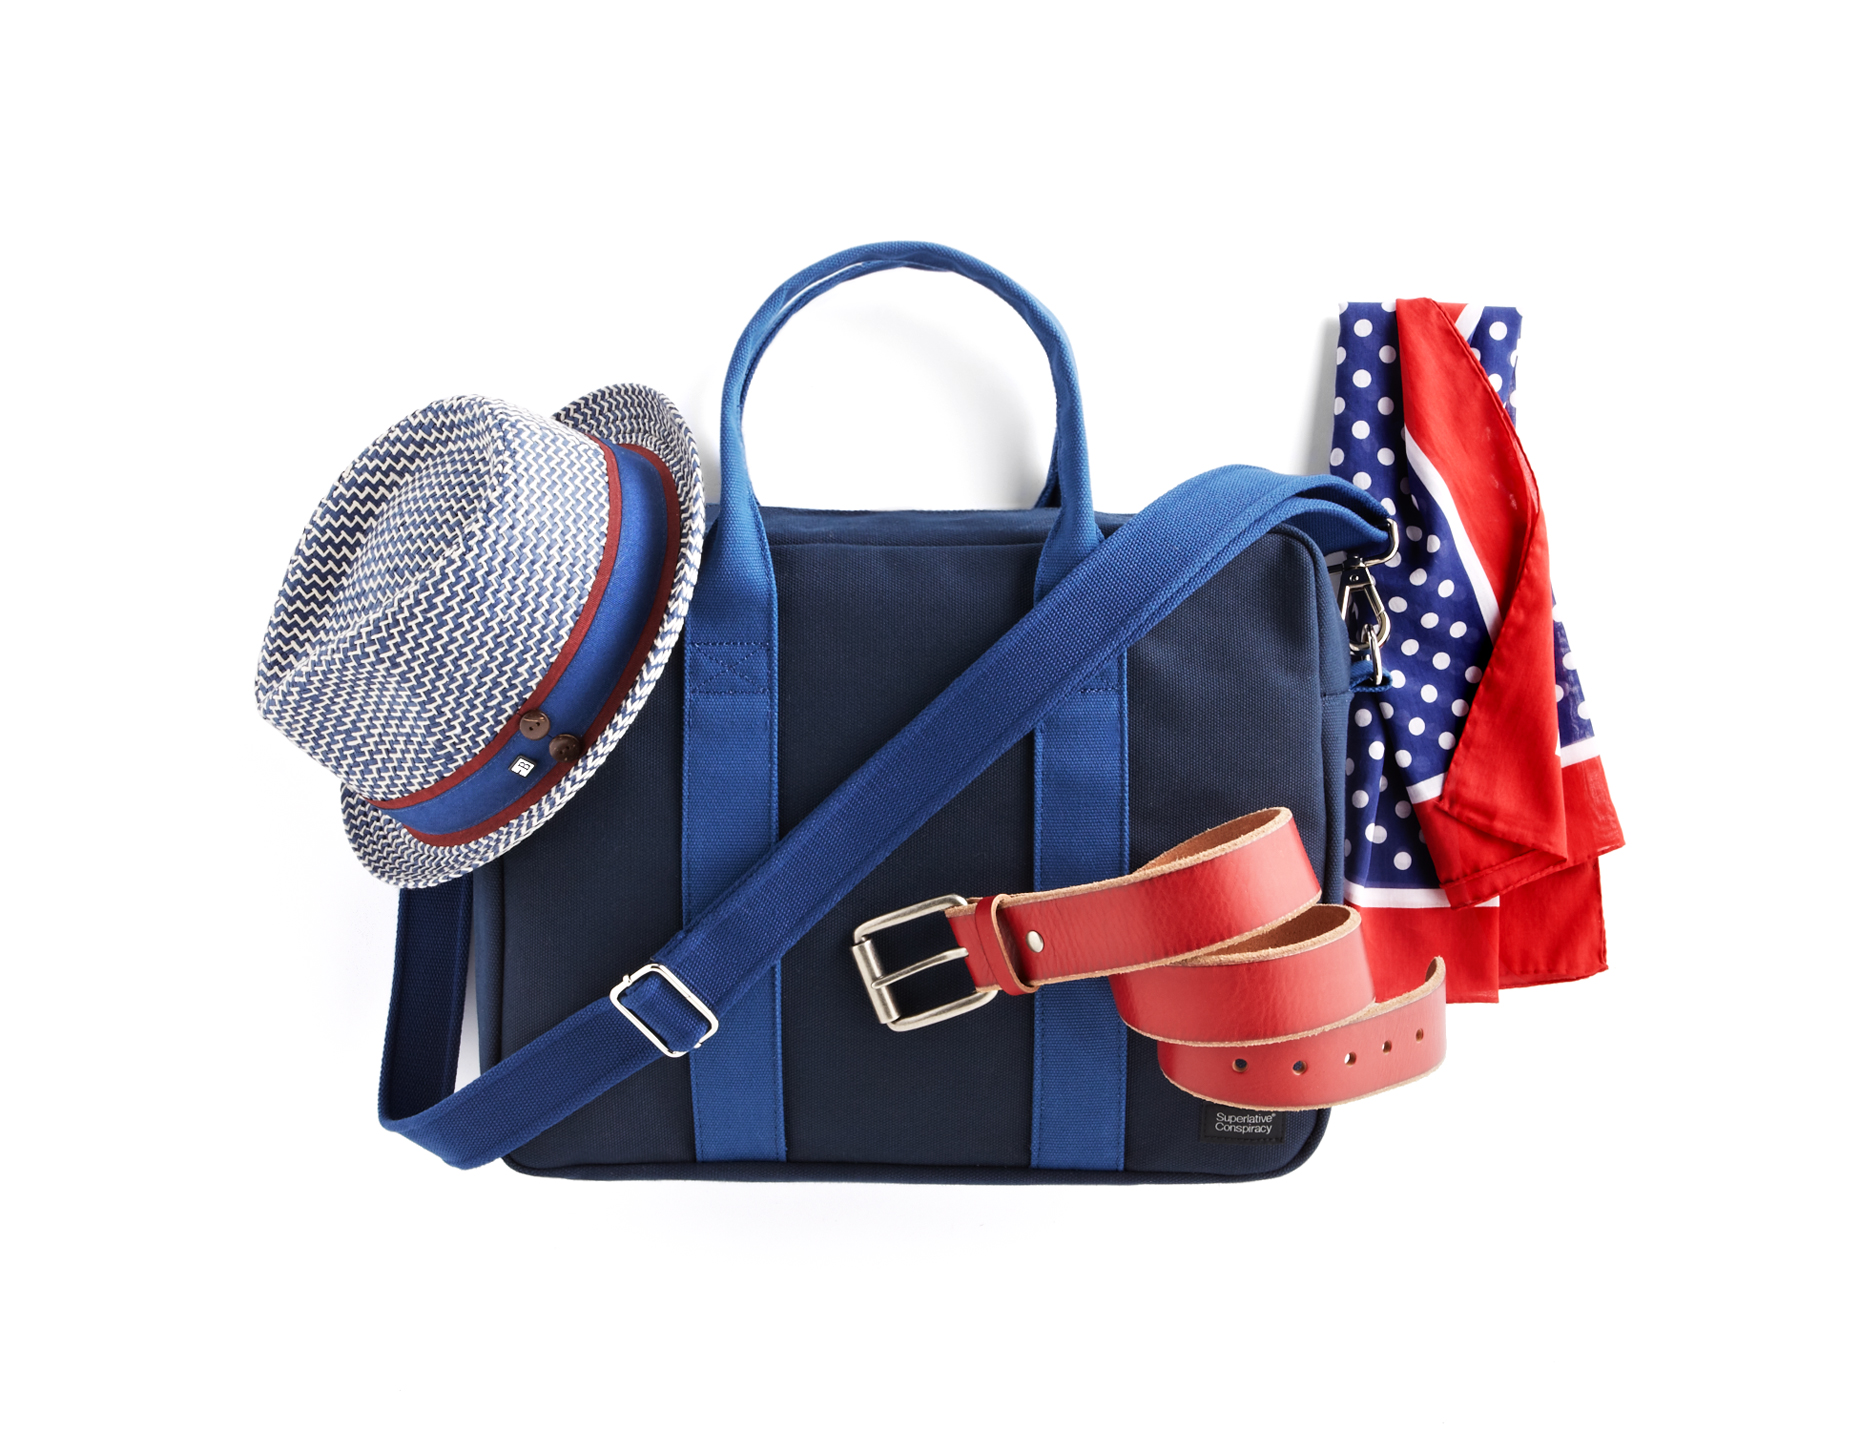 130617_Inc27RedWhiteBlueAccessories10131087_0627_A1